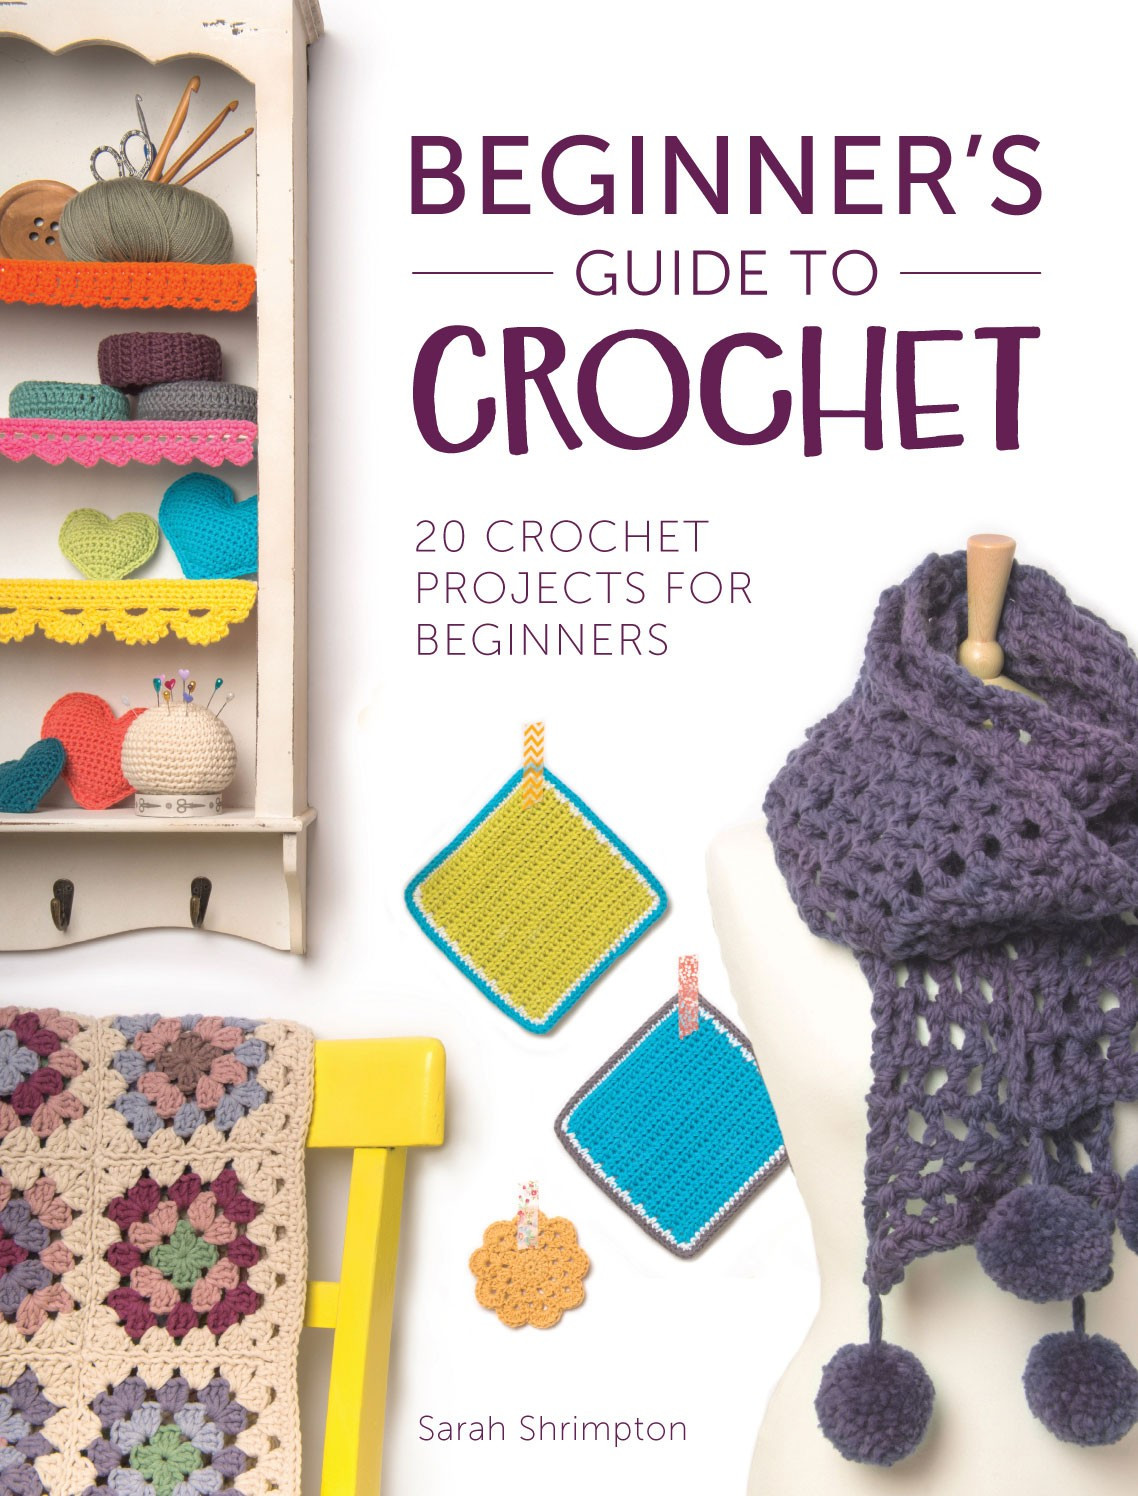 Crochet Books for Beginners Beautiful Beginner S Guide to Crochet Books Crochet Of Unique 40 Pictures Crochet Books for Beginners